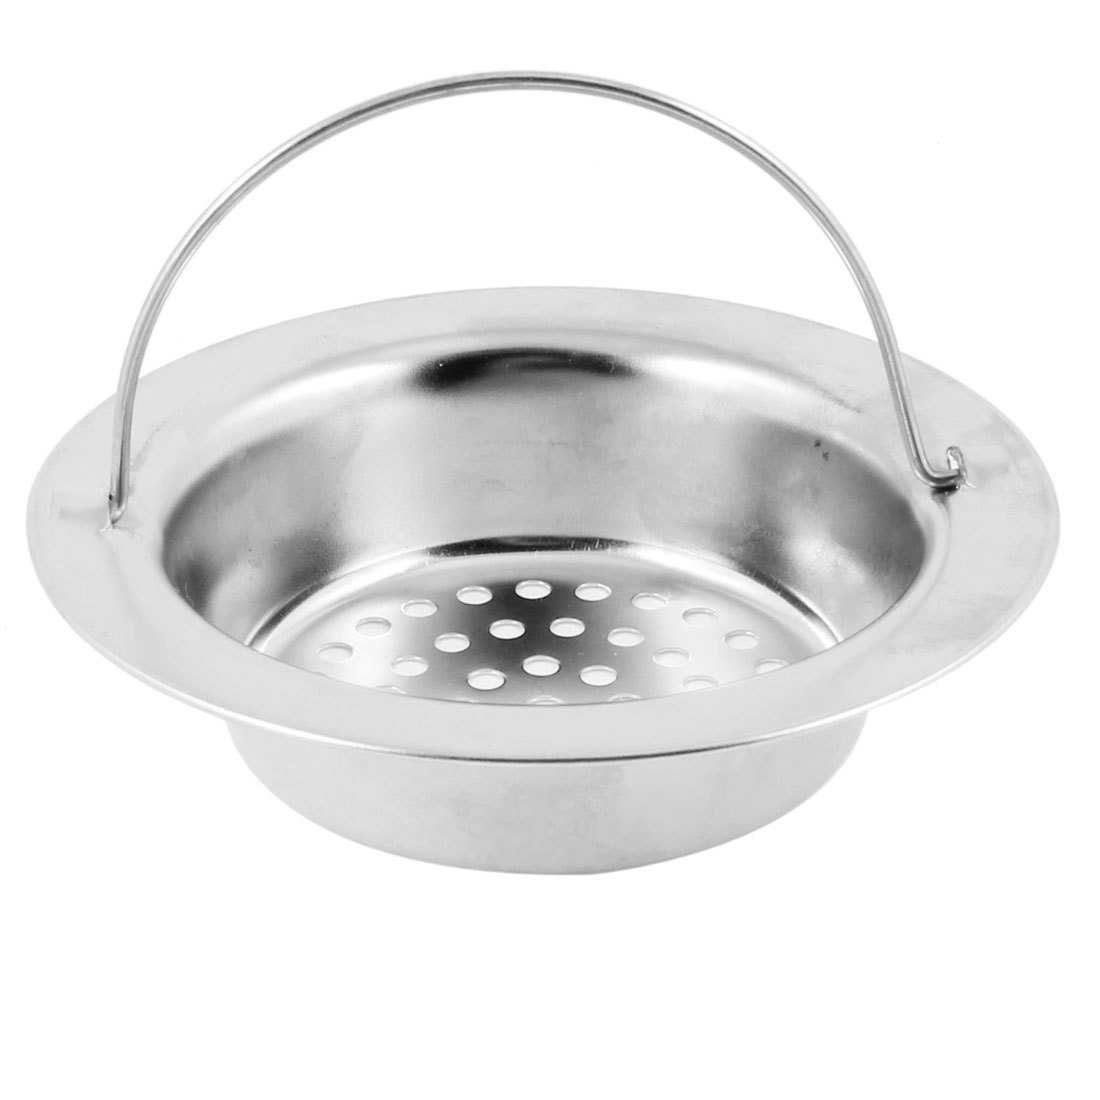 Bathroom Silver Tone Stainless Steel Floor Drain 8.5-9.5cm Dia Strainer Cover